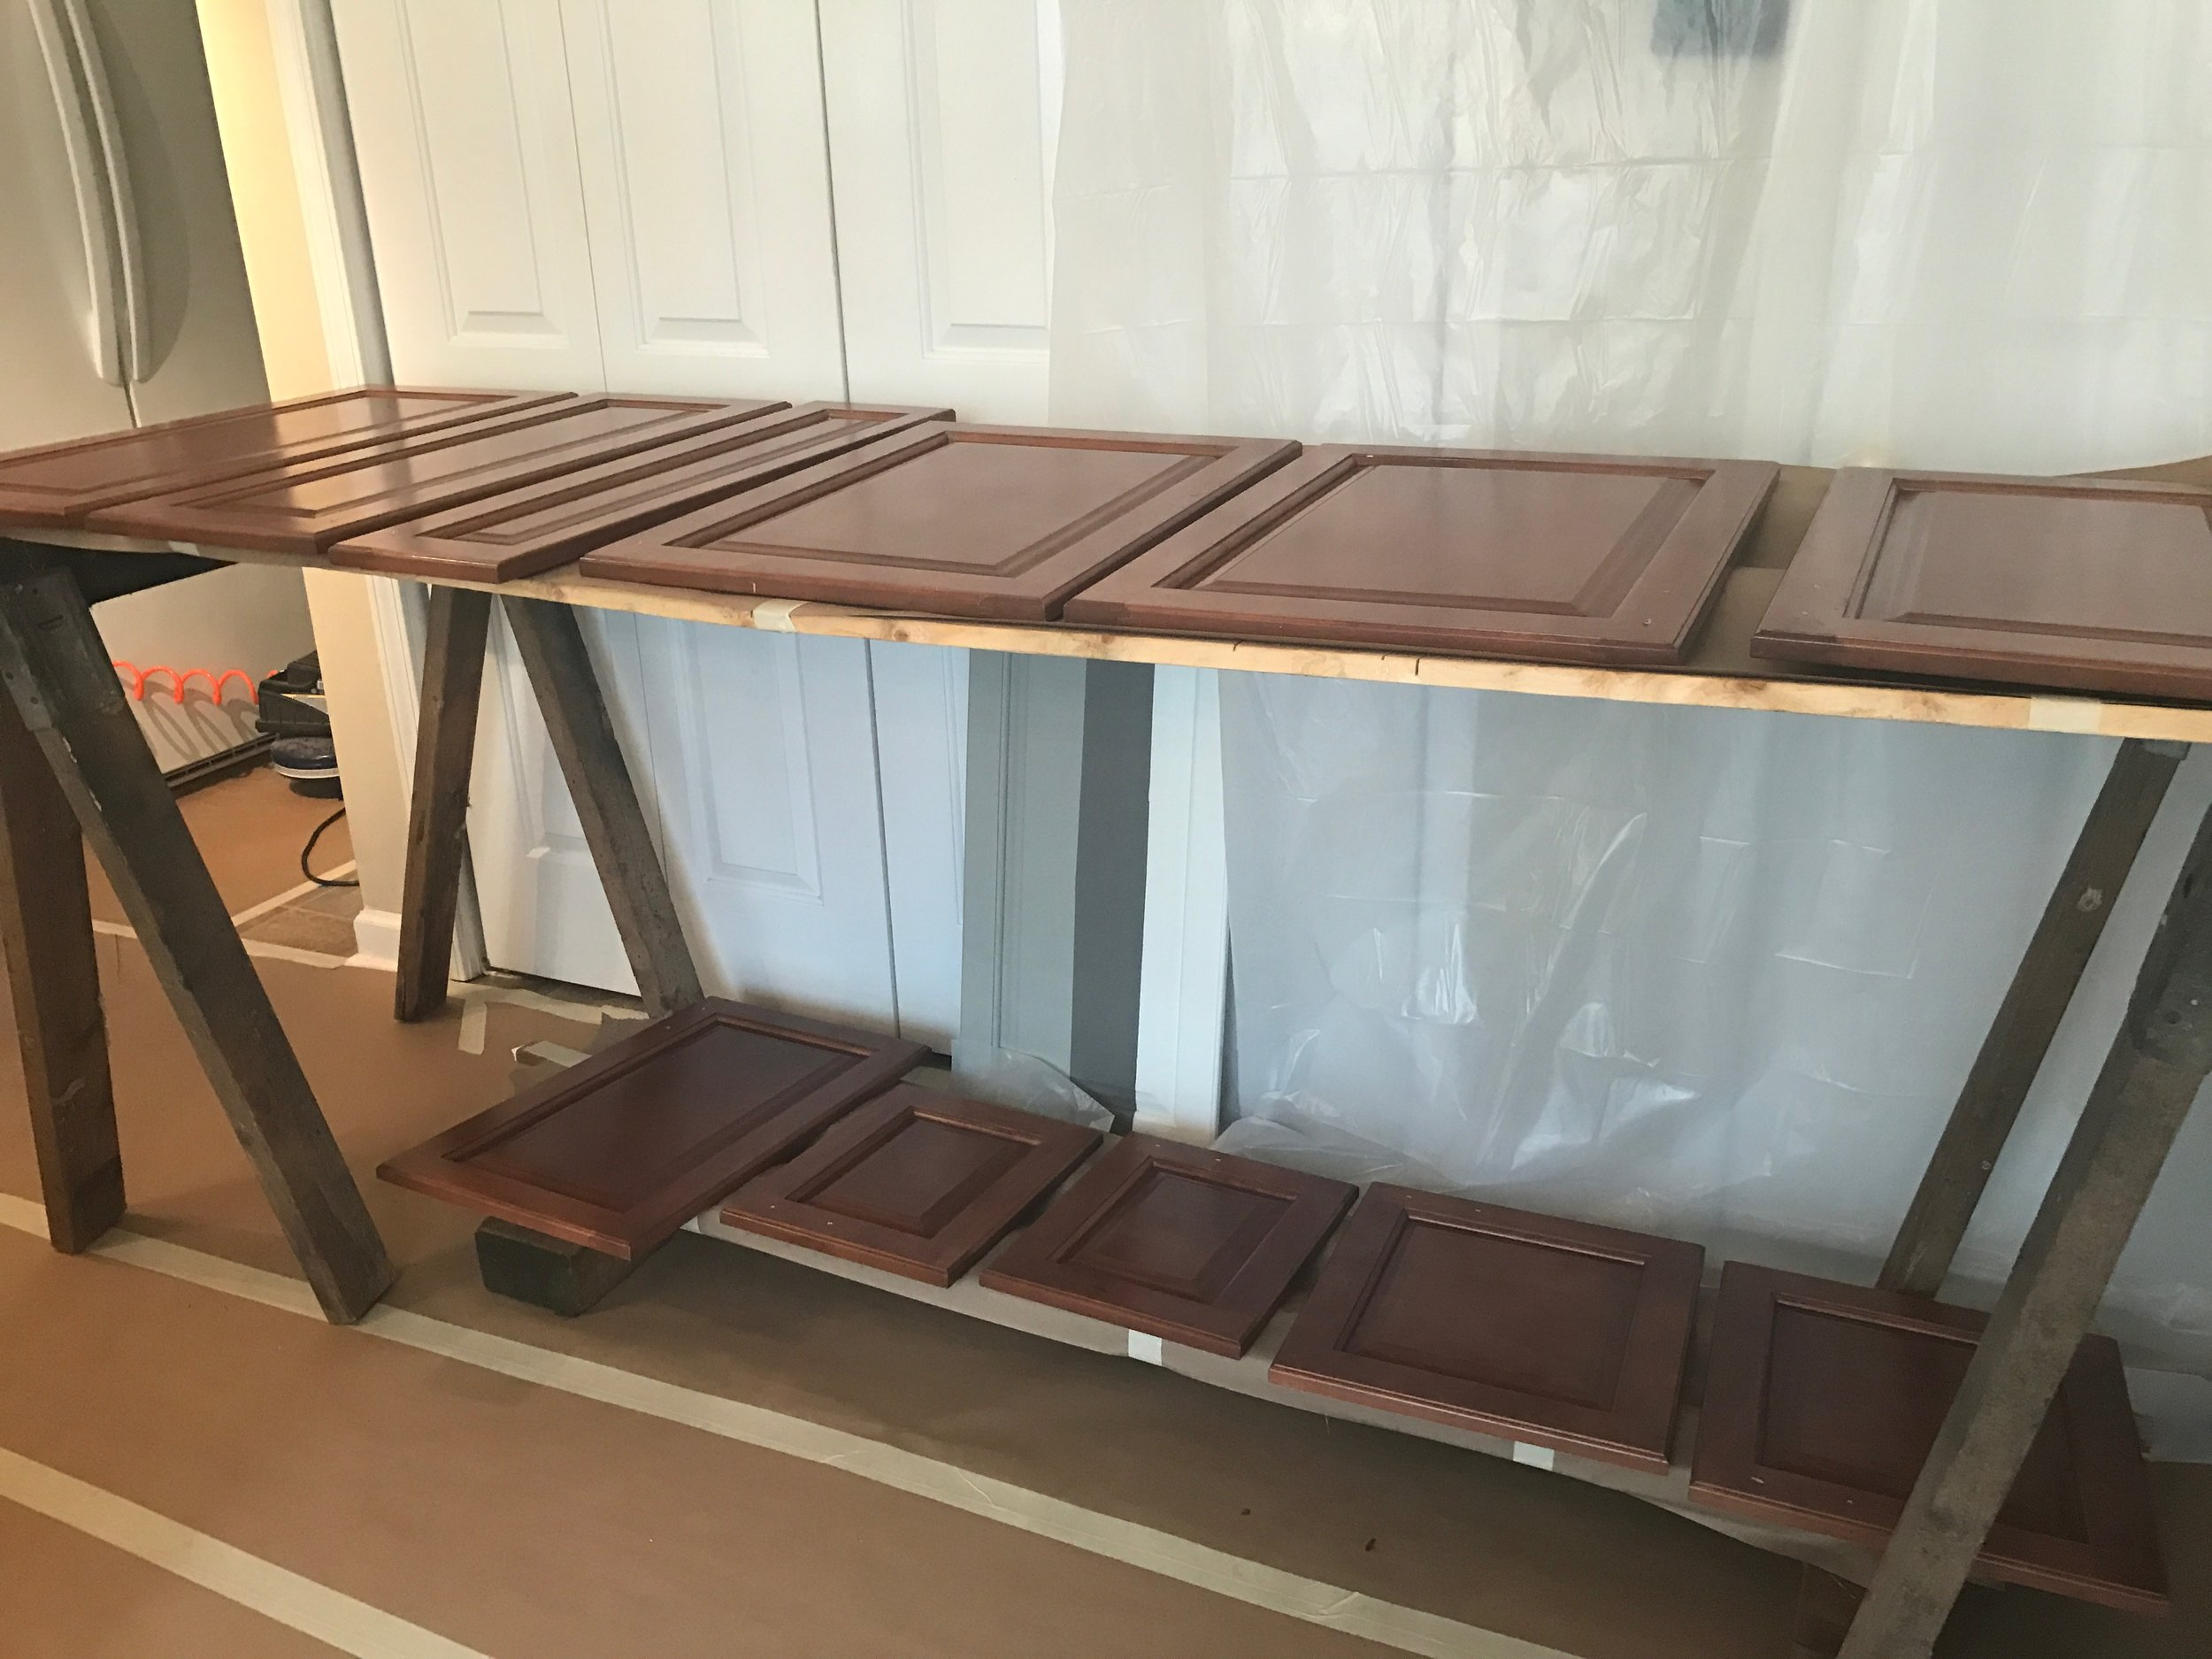 Painted_Kitchen_Cabinets_Indoor_Spraying_Drying_Rack.JPG